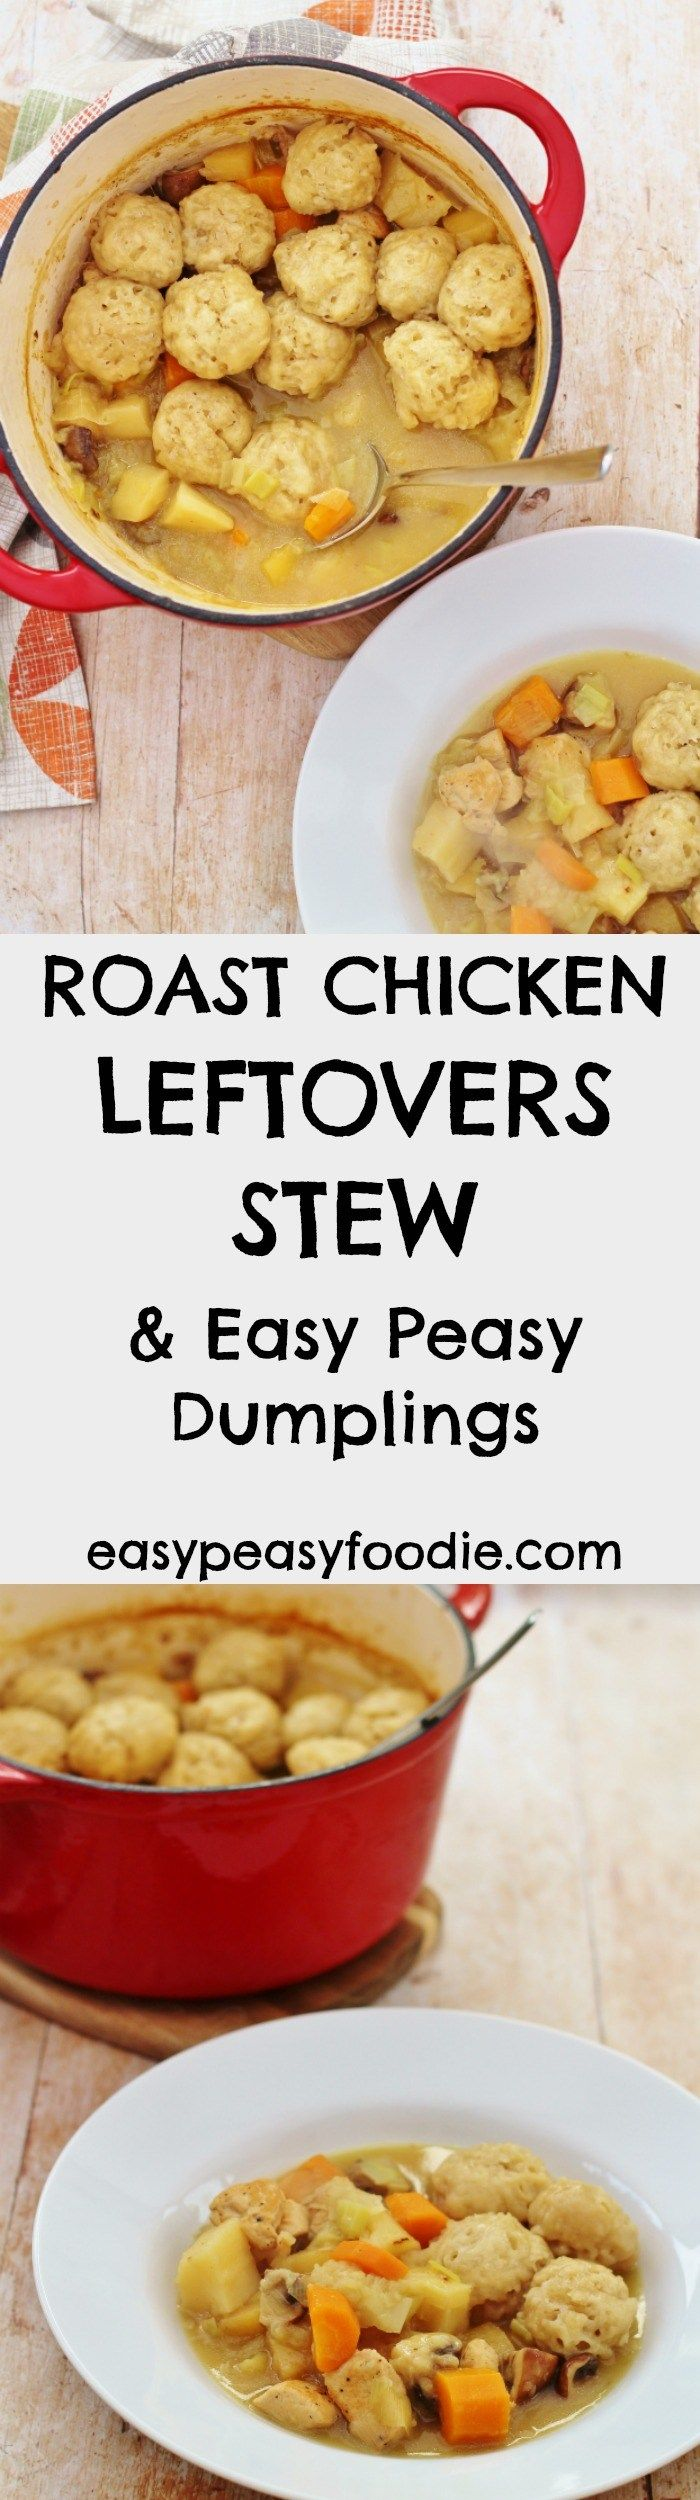 This Roast Chicken Leftovers Stew is serious comfort food and a great way to use leftover roast chicken. Alternatively it can be made with pork, lamb or beef leftovers. No leftovers? No problem! This stew can be made with fresh diced chicken too. #roastchicken #chicken #leftovers #leftover #stew #dumplings #easydinners #midweekmeals #easypeasyfoodie